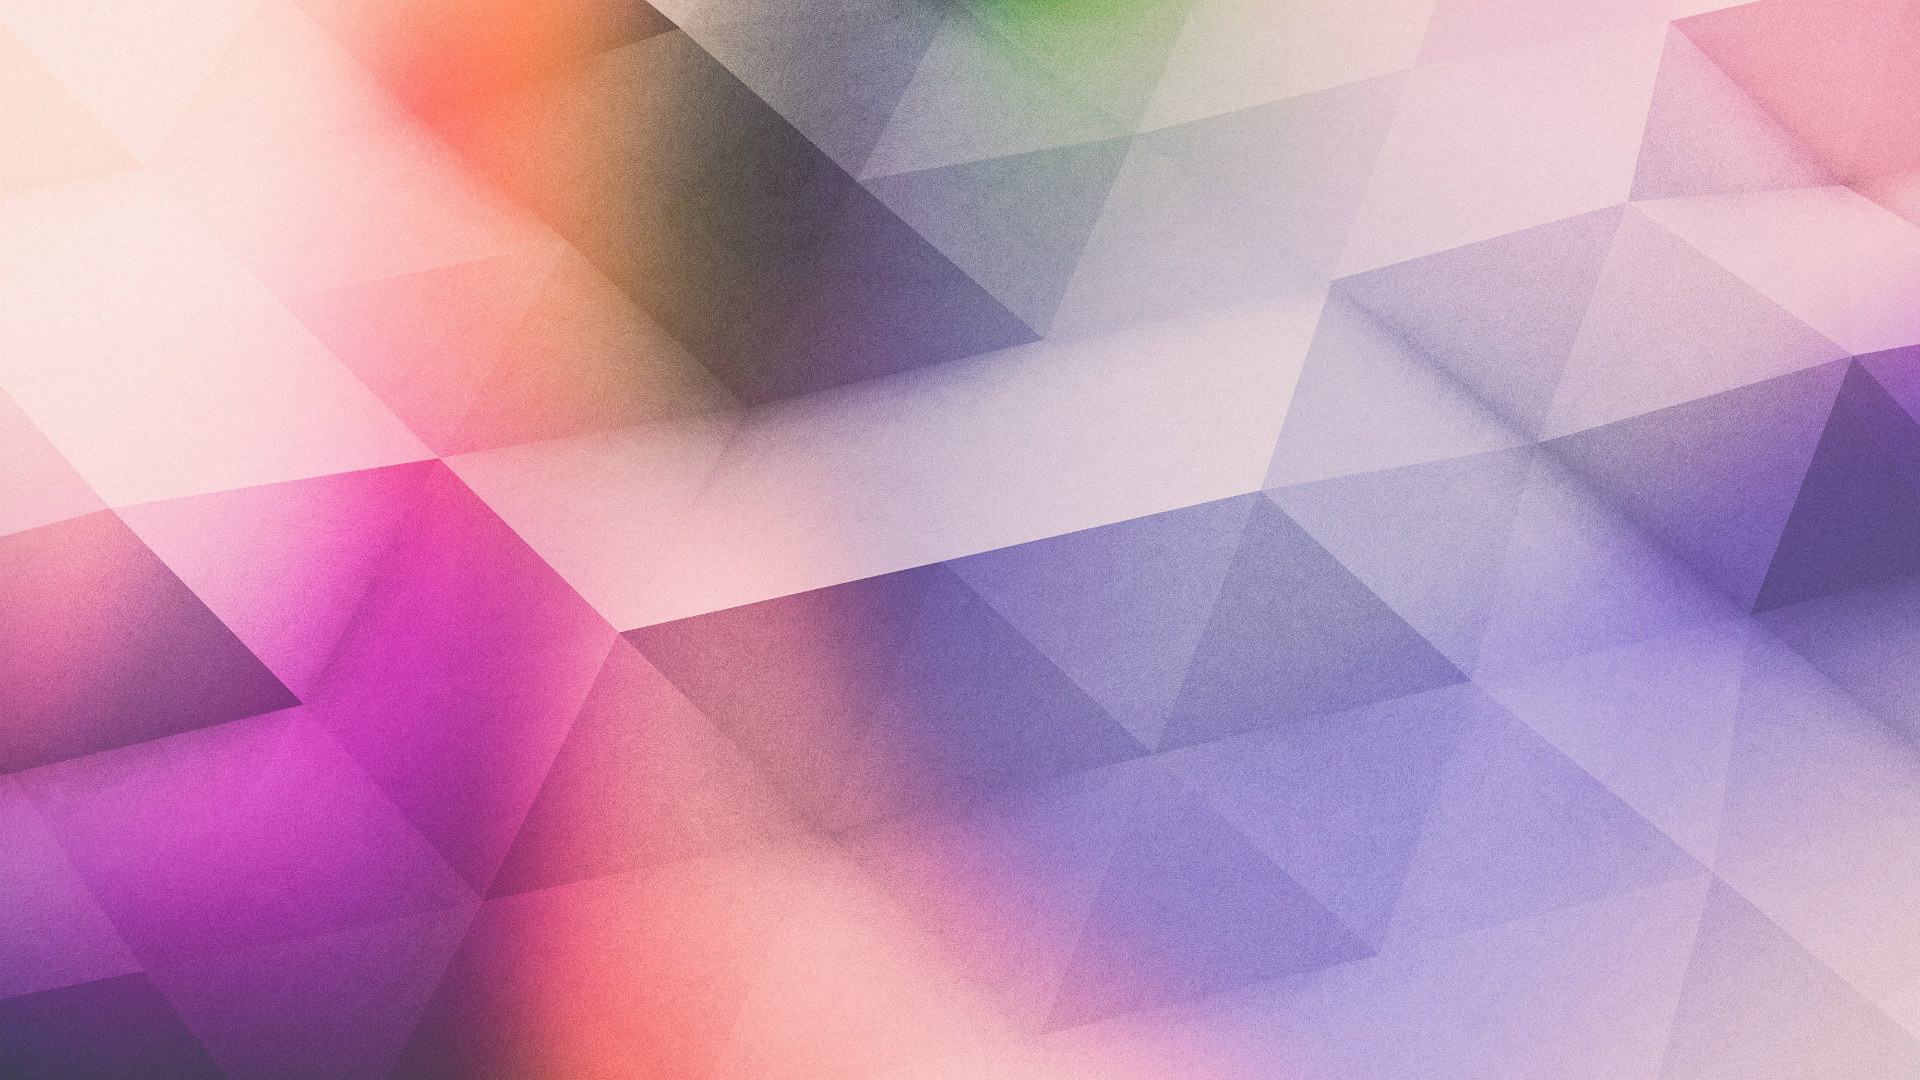 Abstract Triangles wallpaper   1112391 1920x1080